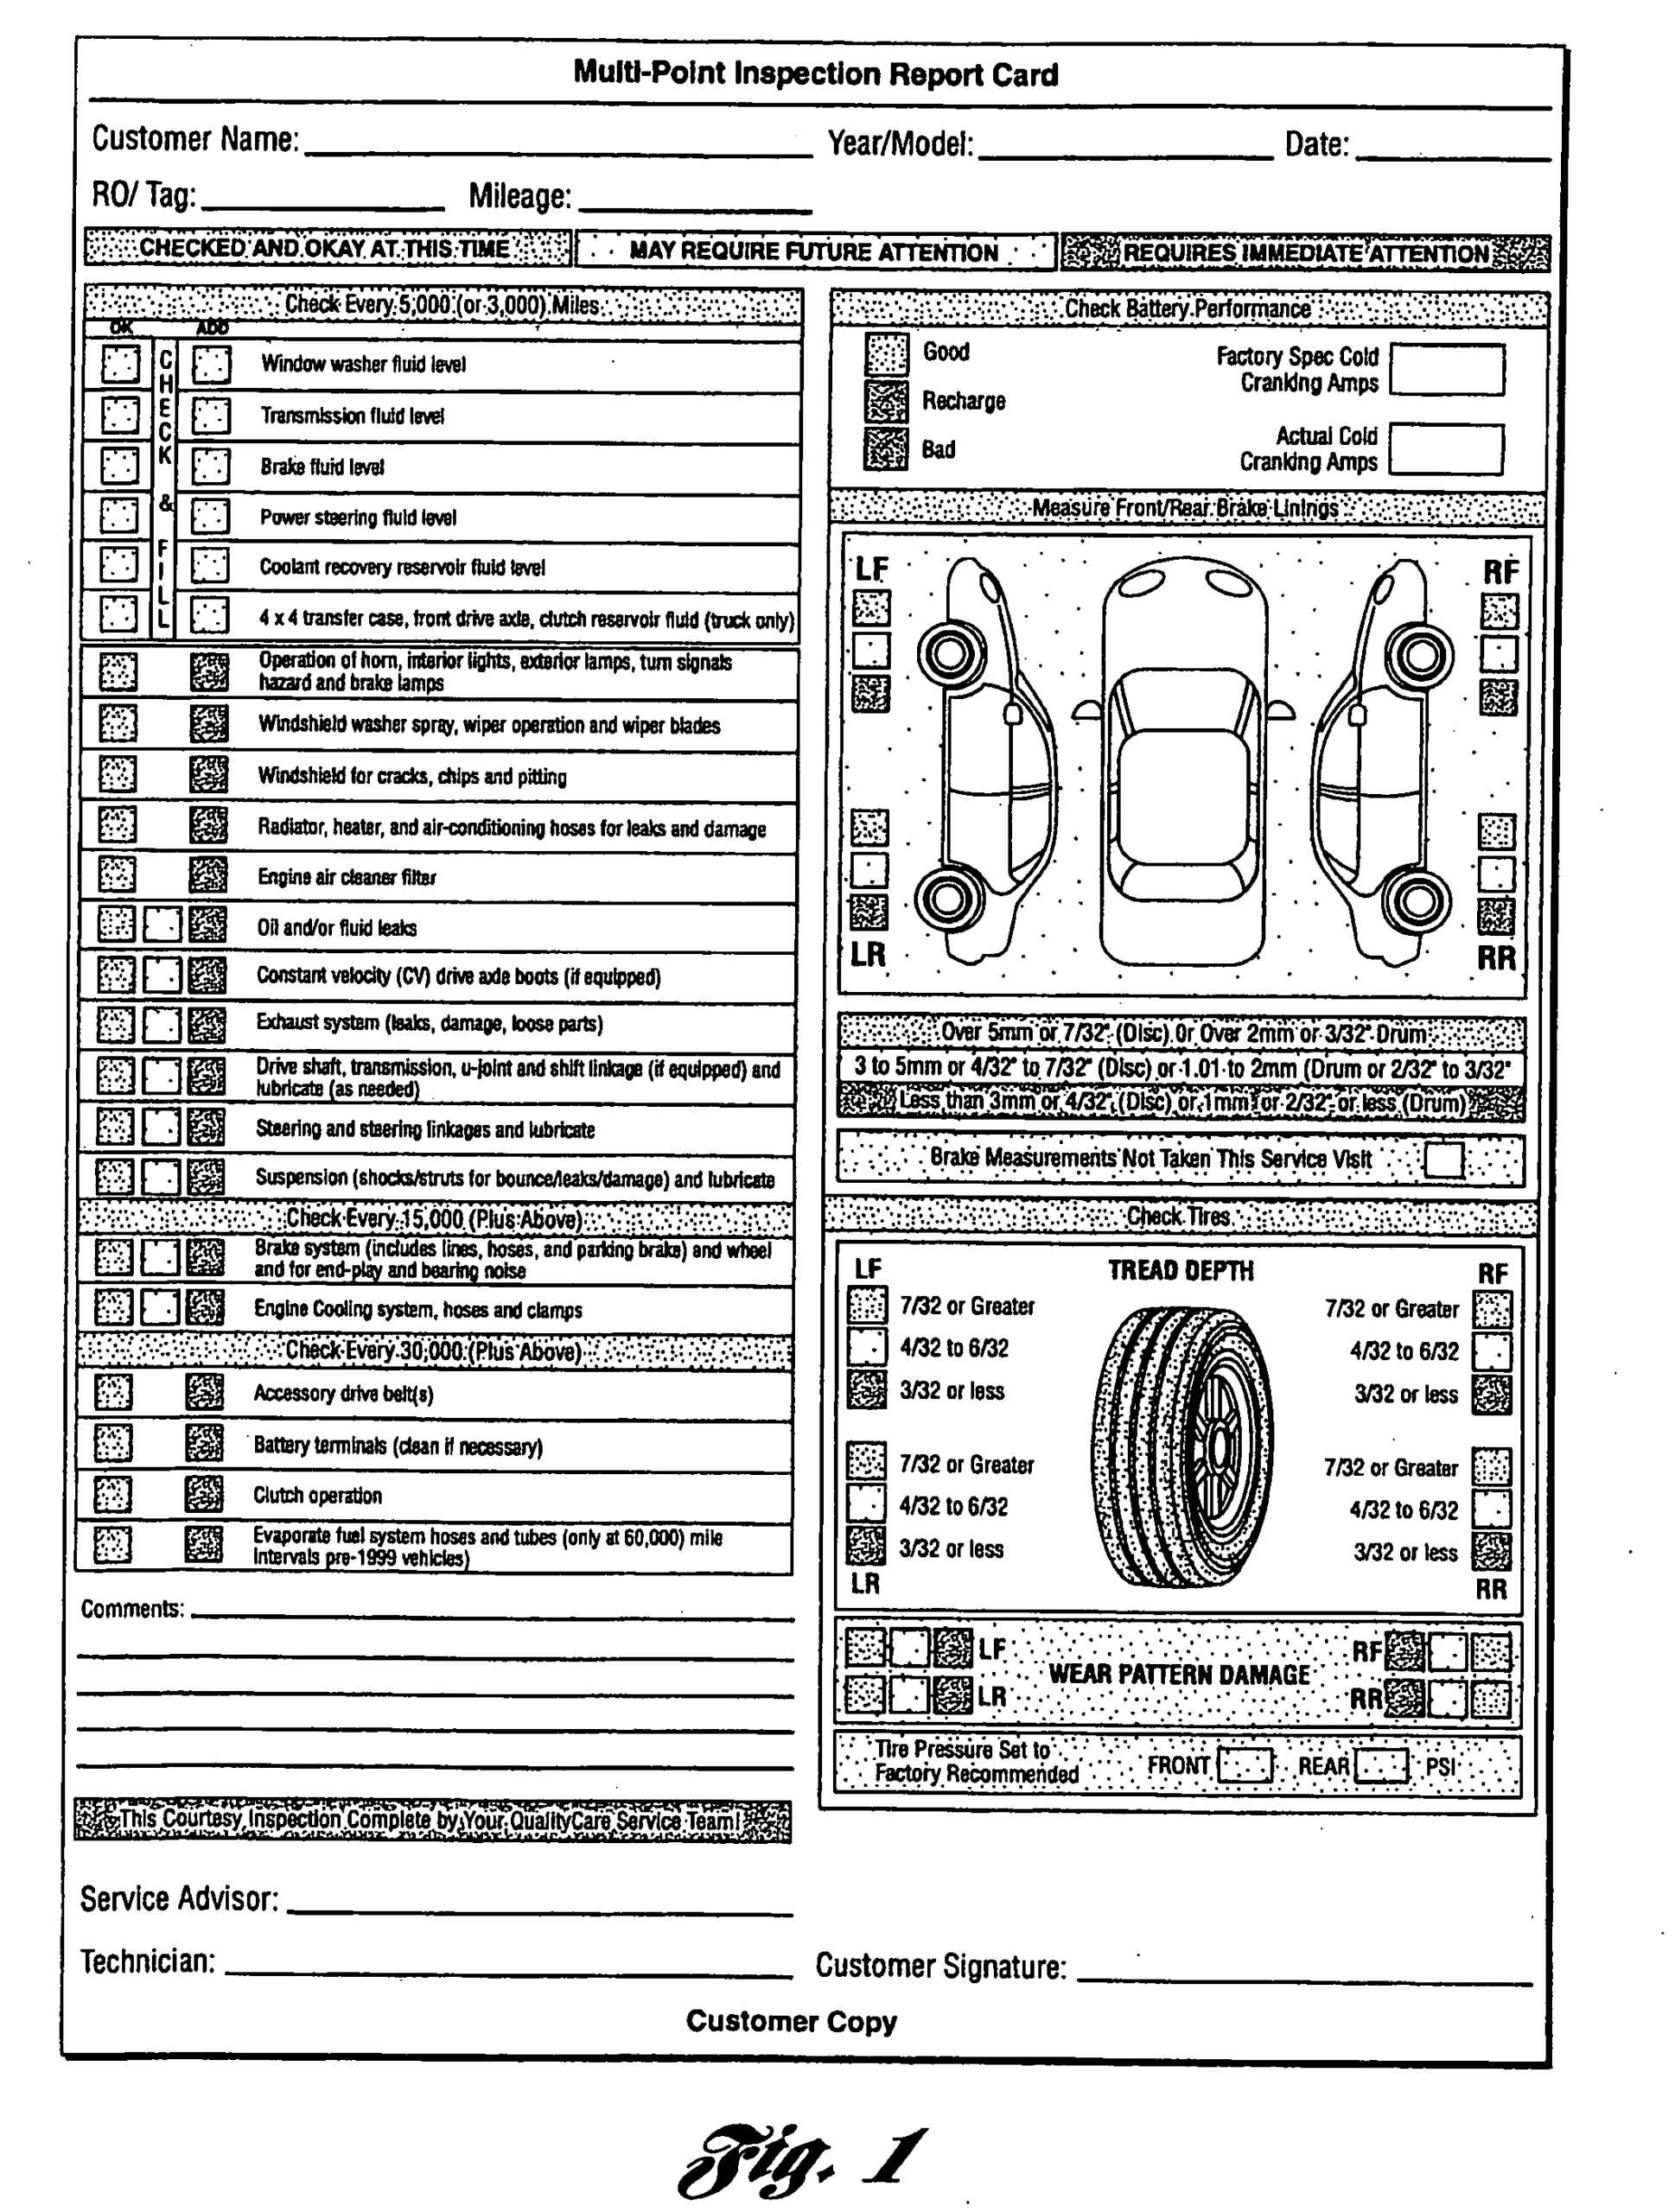 012 Driver Vehicle Inspection Report Template Free Annual With Regard To Vehicle Inspection Report Template